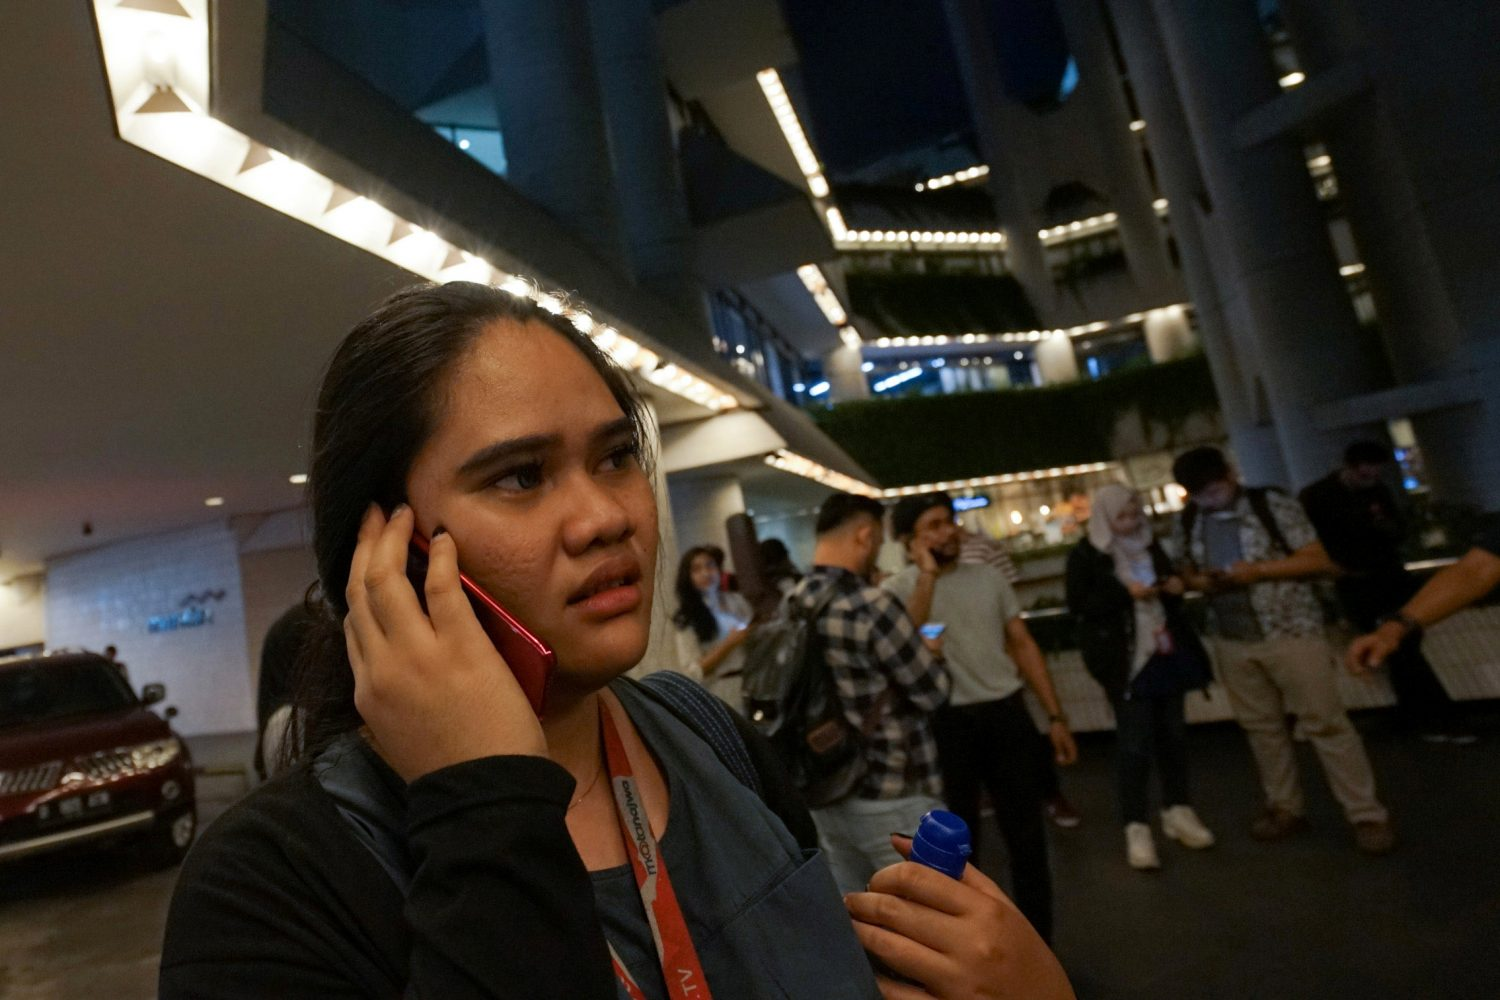 A woman uses a phone as she leaves an office building, following an earthquake hit in Jakarta, Indonesia, August 2, 2019 in this photo taken by Antara Foto. Antara Foto/Dwi Prasetya/ via REUTERS